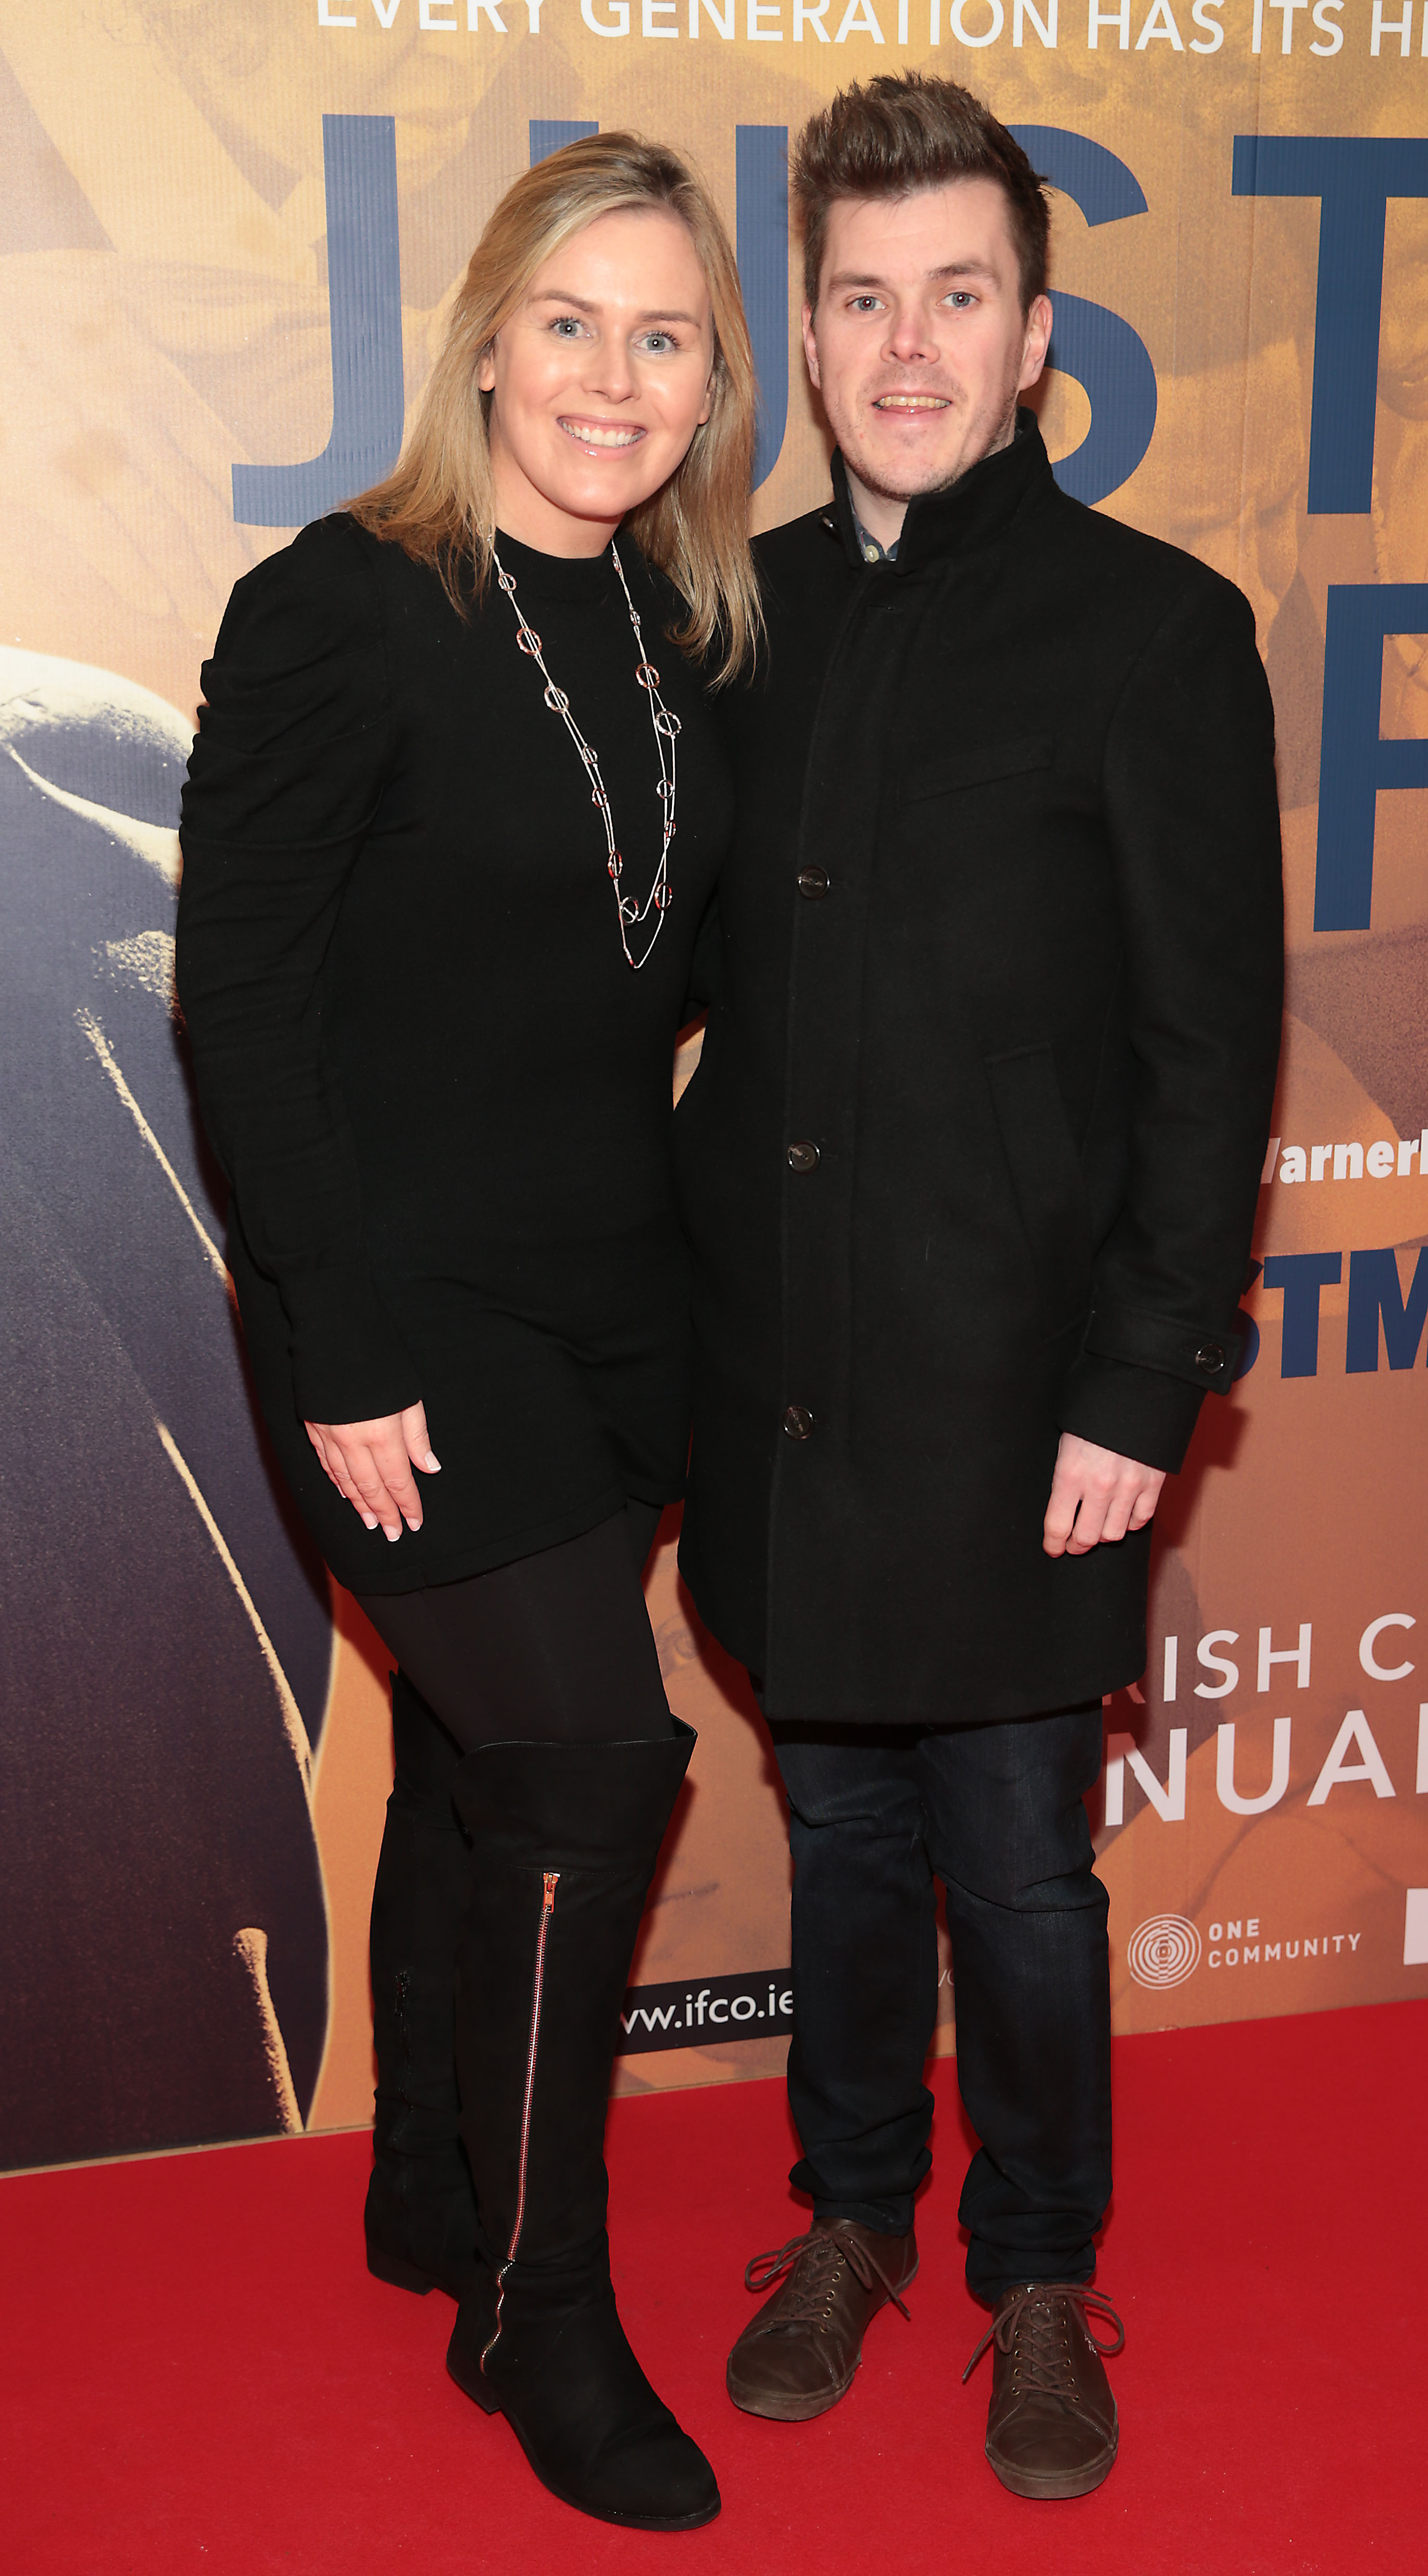 Caitriona O Connor and Joe Slater at the special preview screening of Just Mercy at the Lighthouse Cinema, Dublin. Pic Brian McEvoy